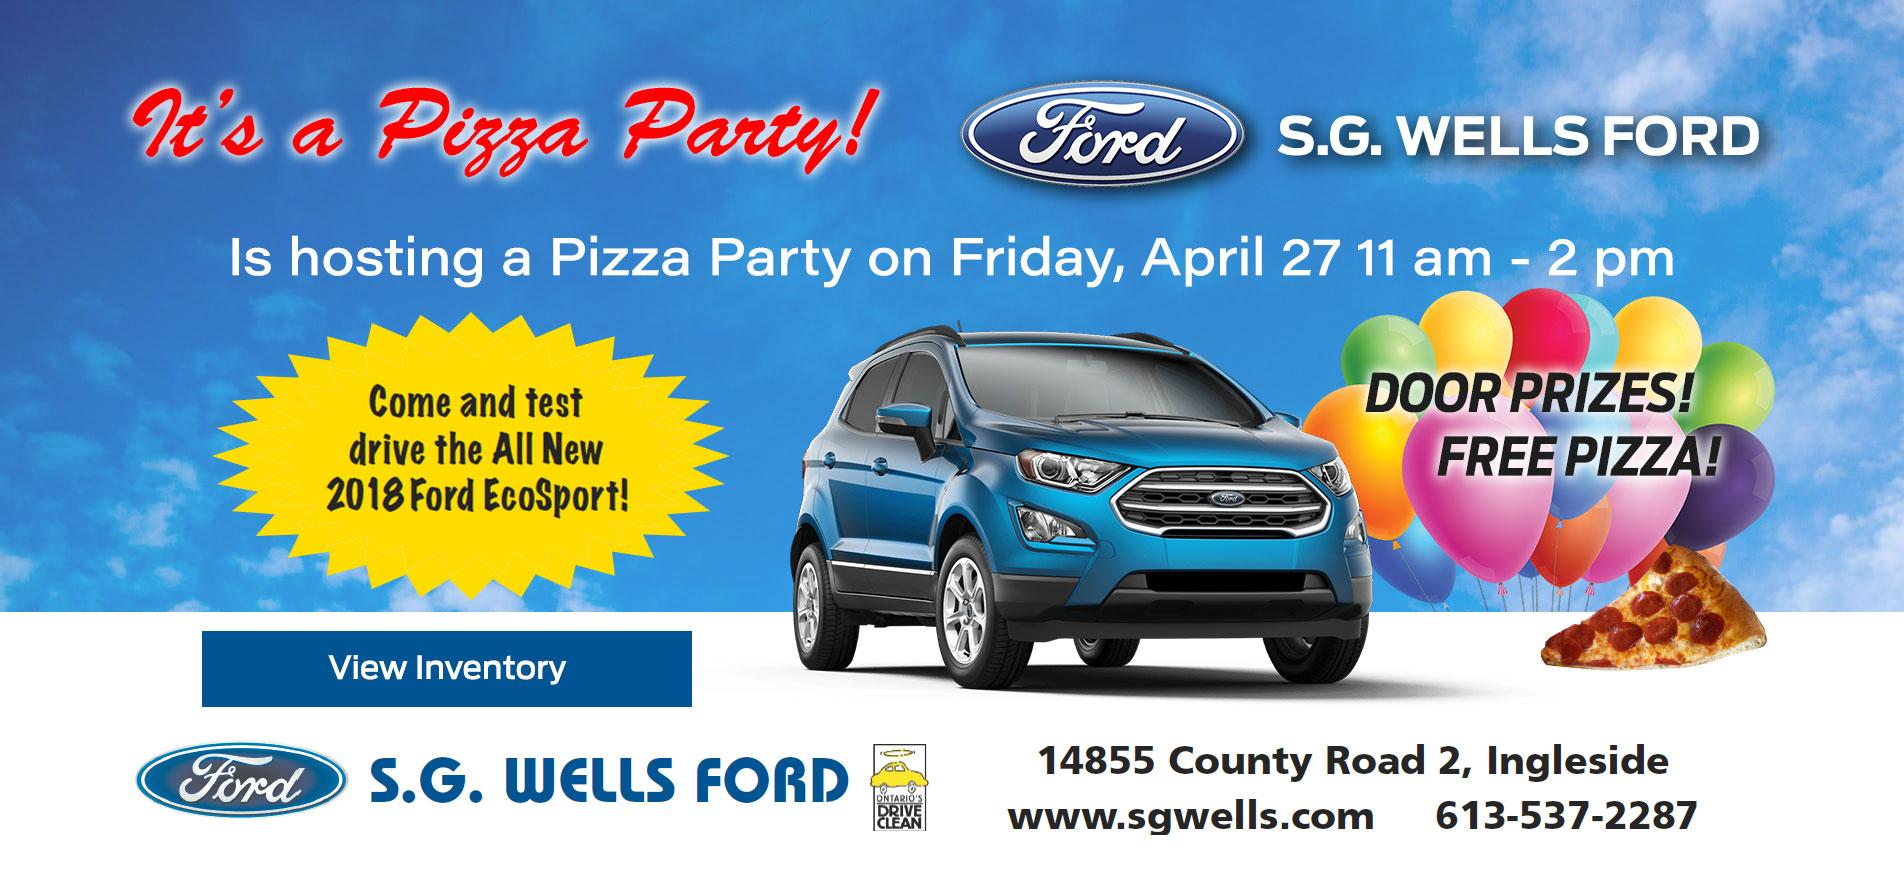 S.G. WELLS FORD PIZZA PARTY